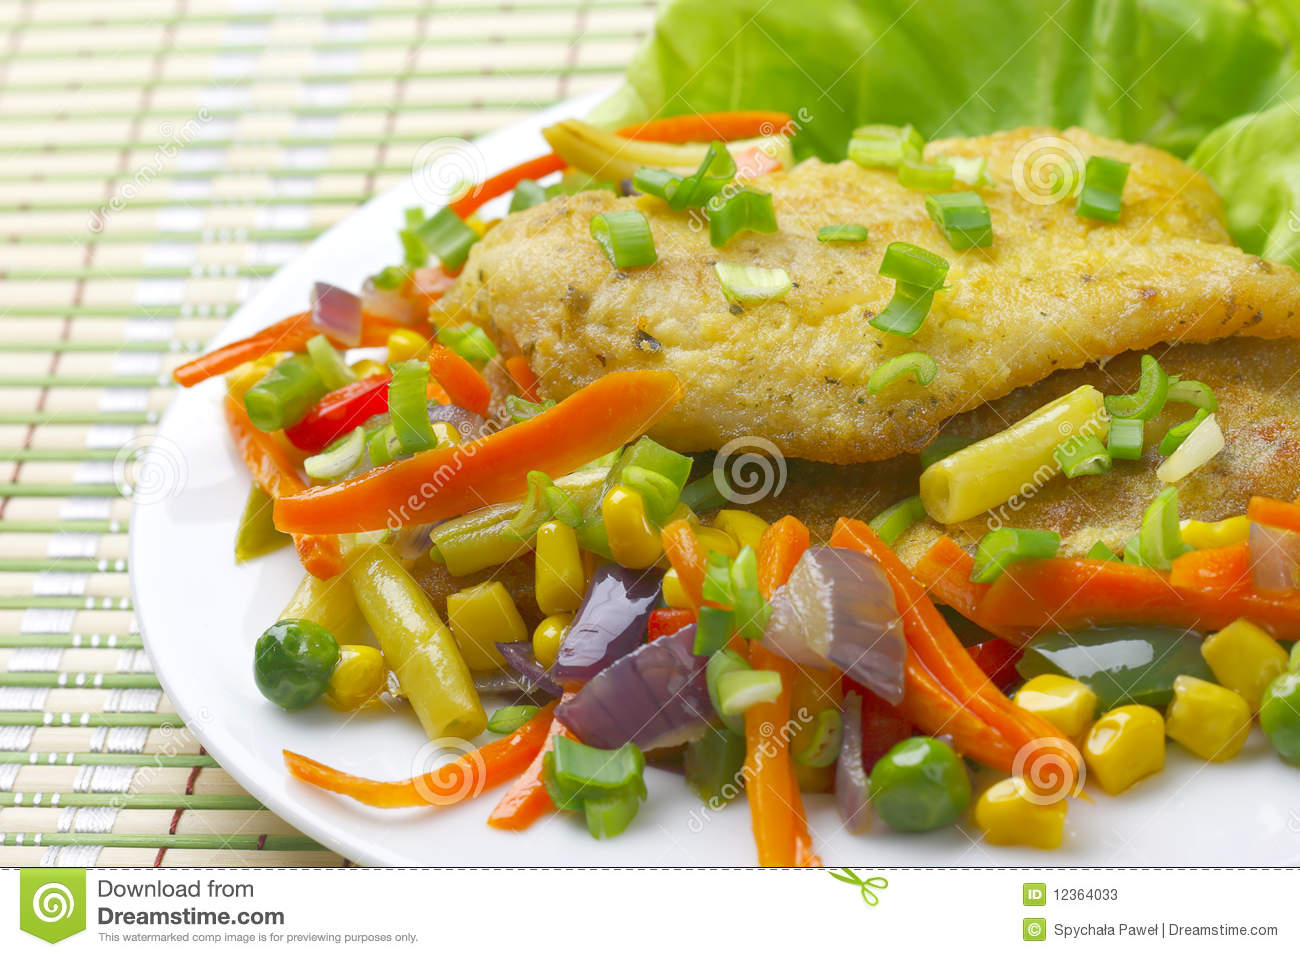 Fish fillet with vegetables stock photos image 12364033 for What vegetables go with fish